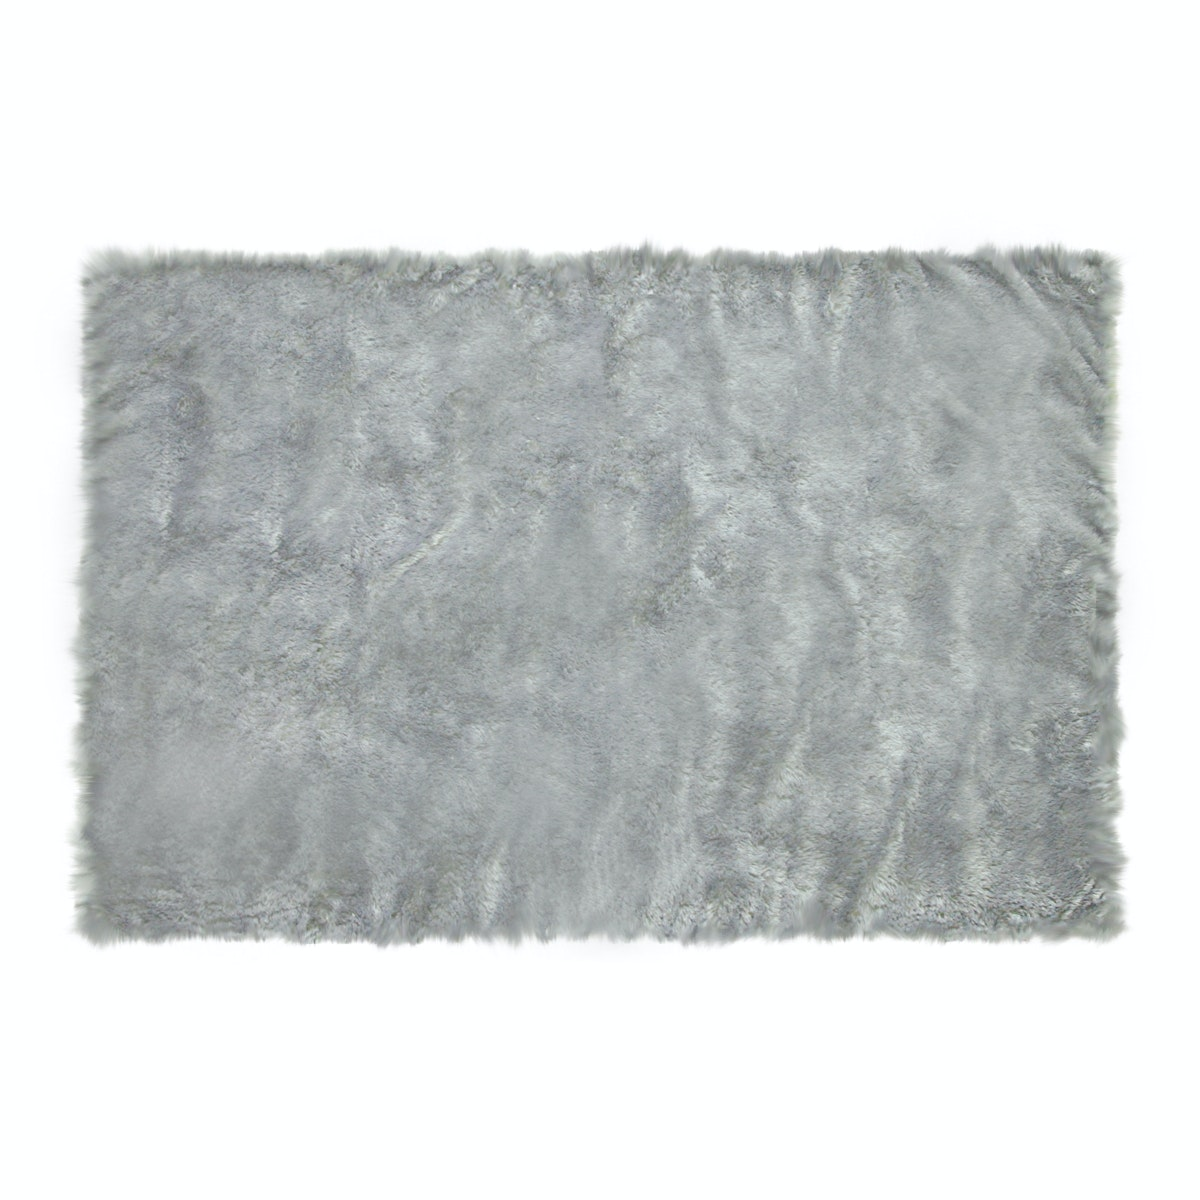 Glerry Home Decor Square Grey Fur Rug 300x150cm